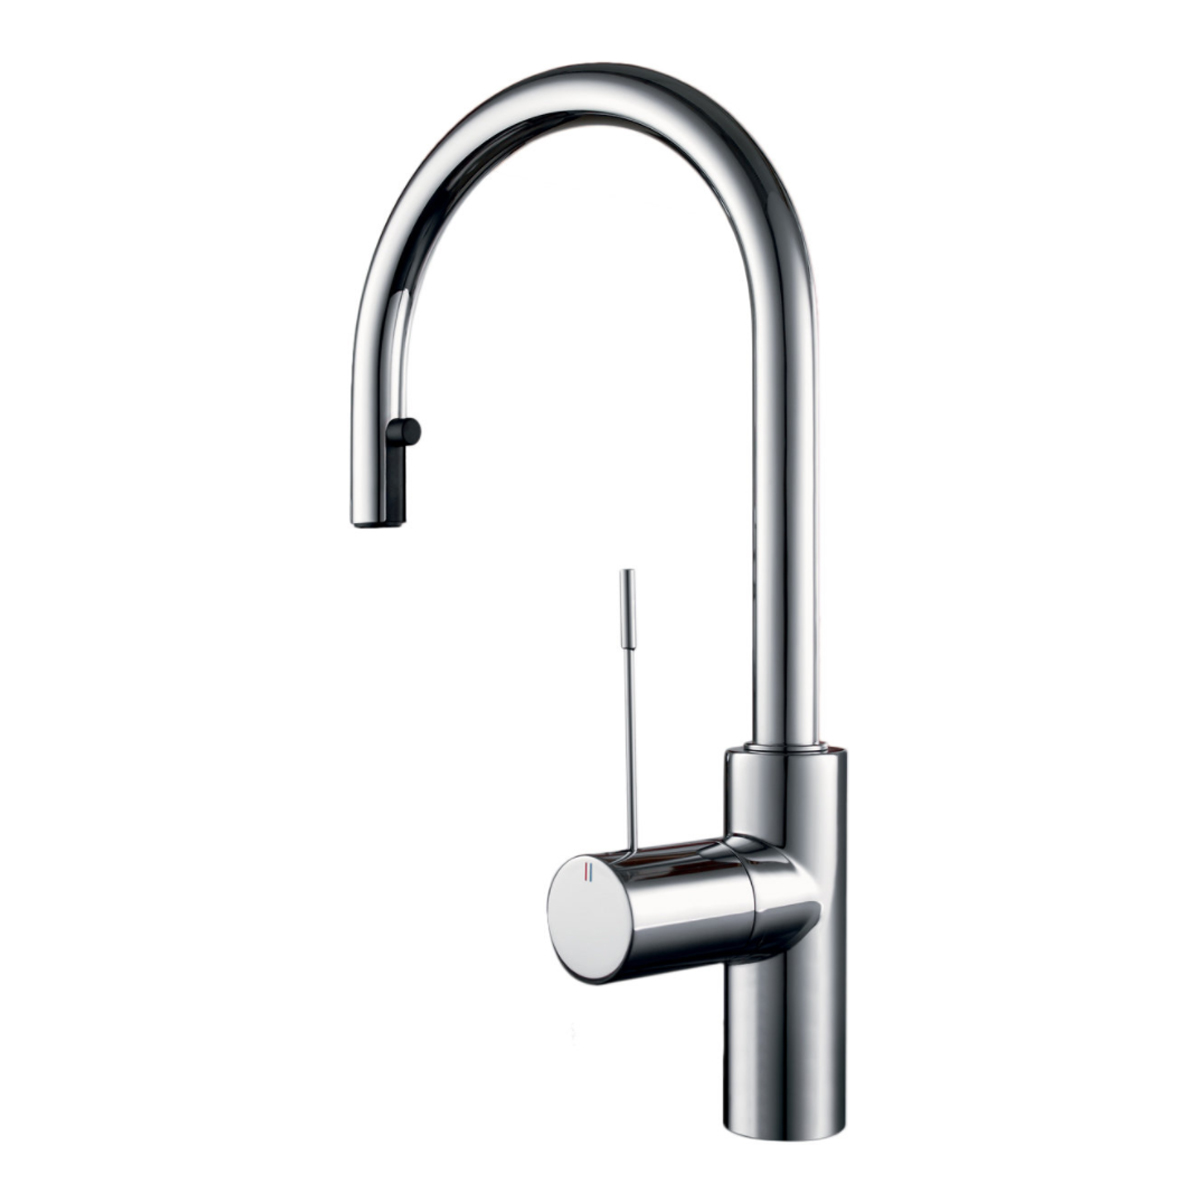 Kwc 10151102000 Ono Pull-out Tap